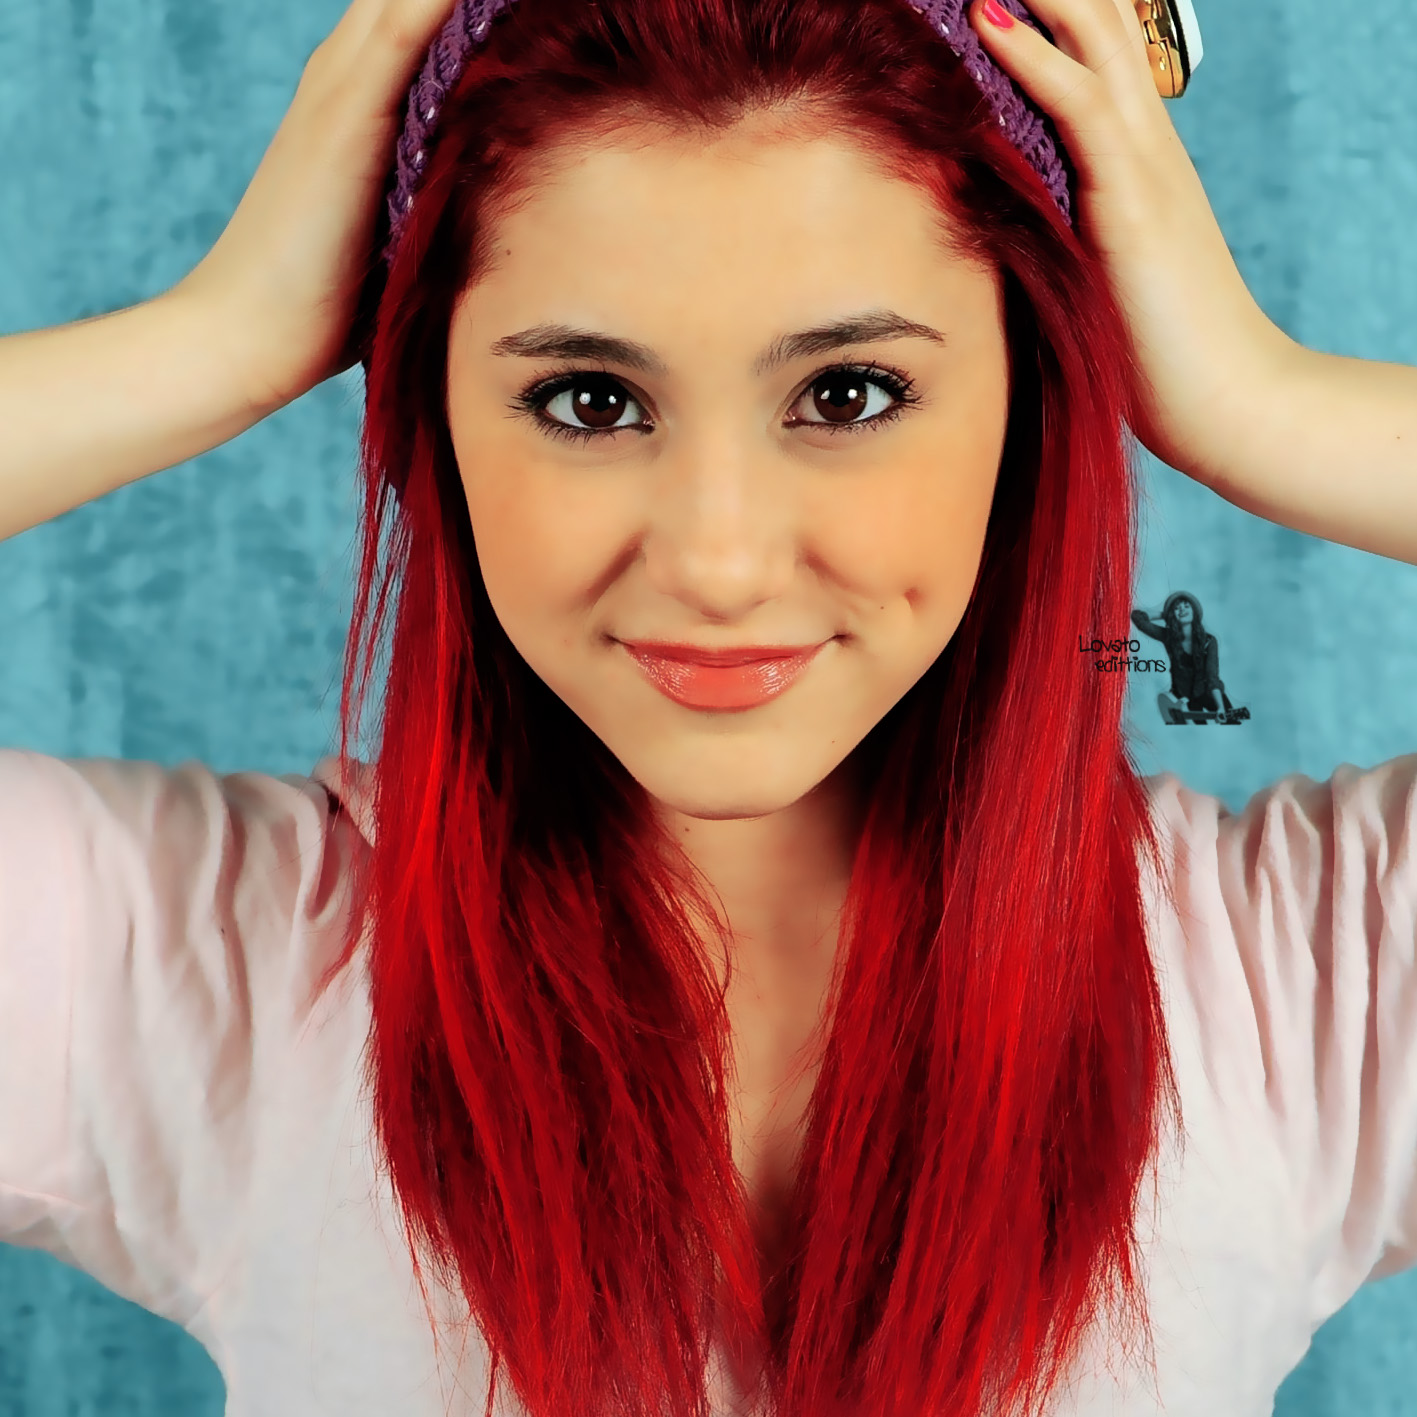 Ariana-Grande-Red-Hair